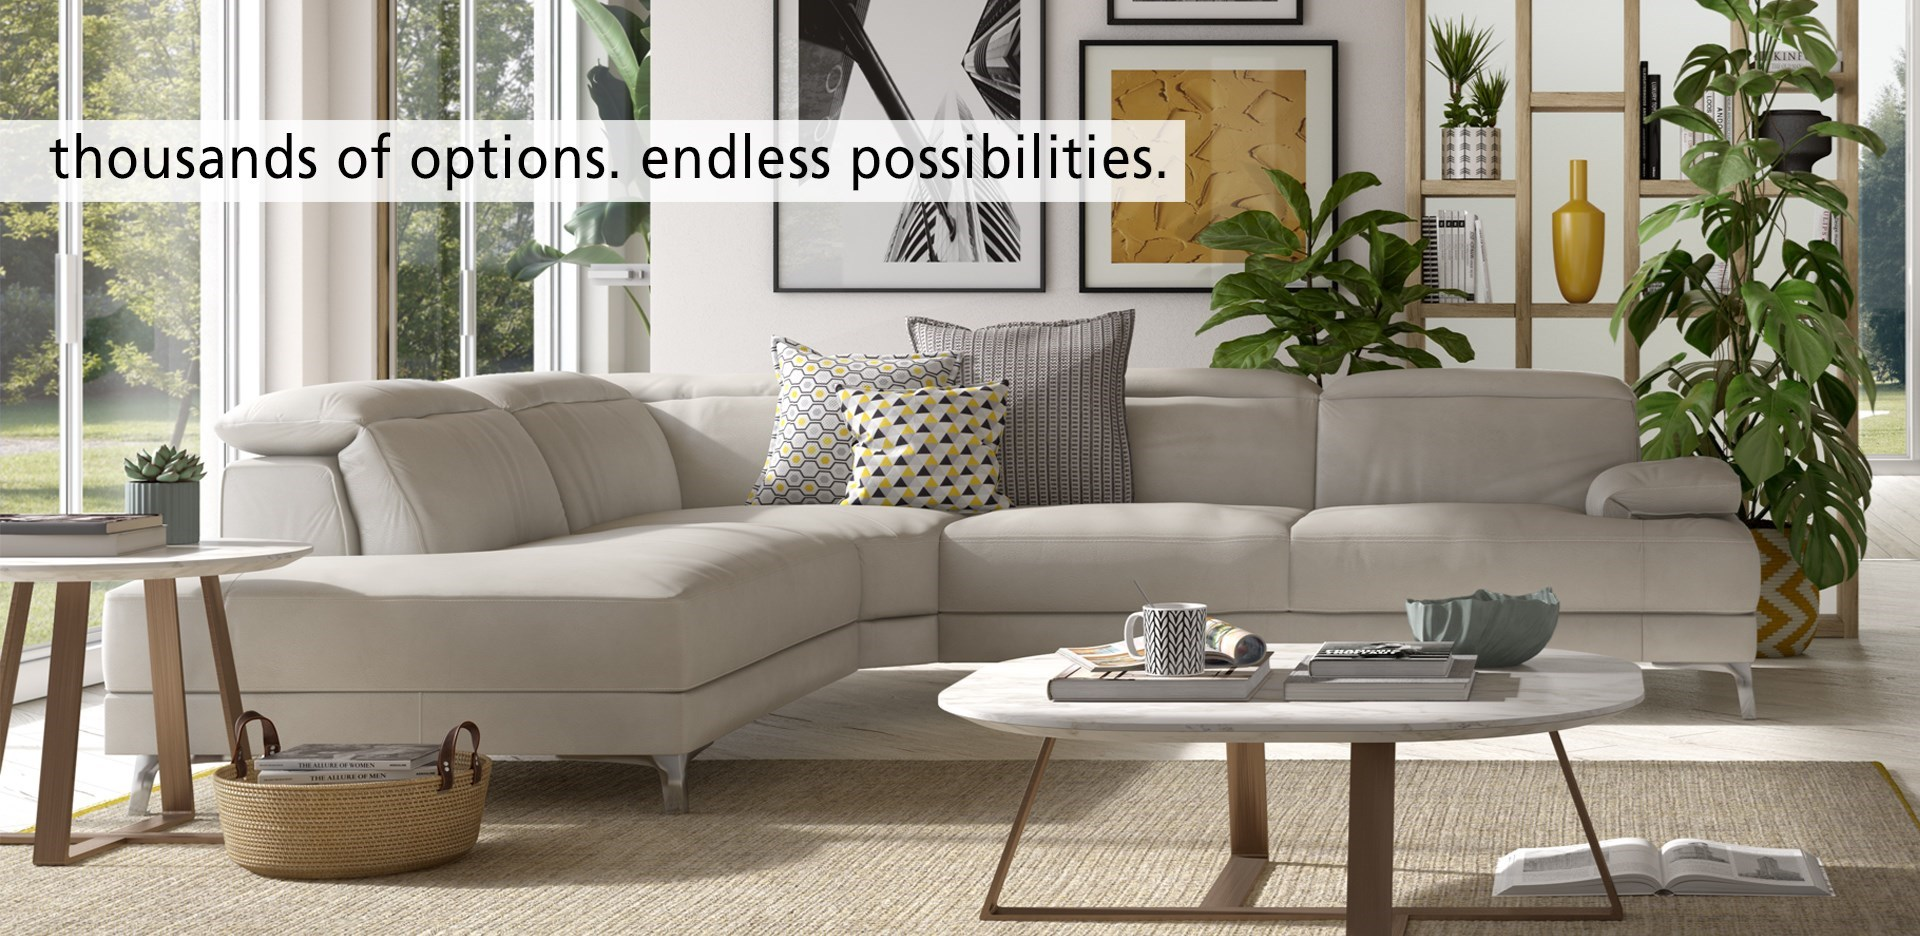 Branding. Thousands of Options. Endless possibilities. Natuzzi Editions living room with sectional.